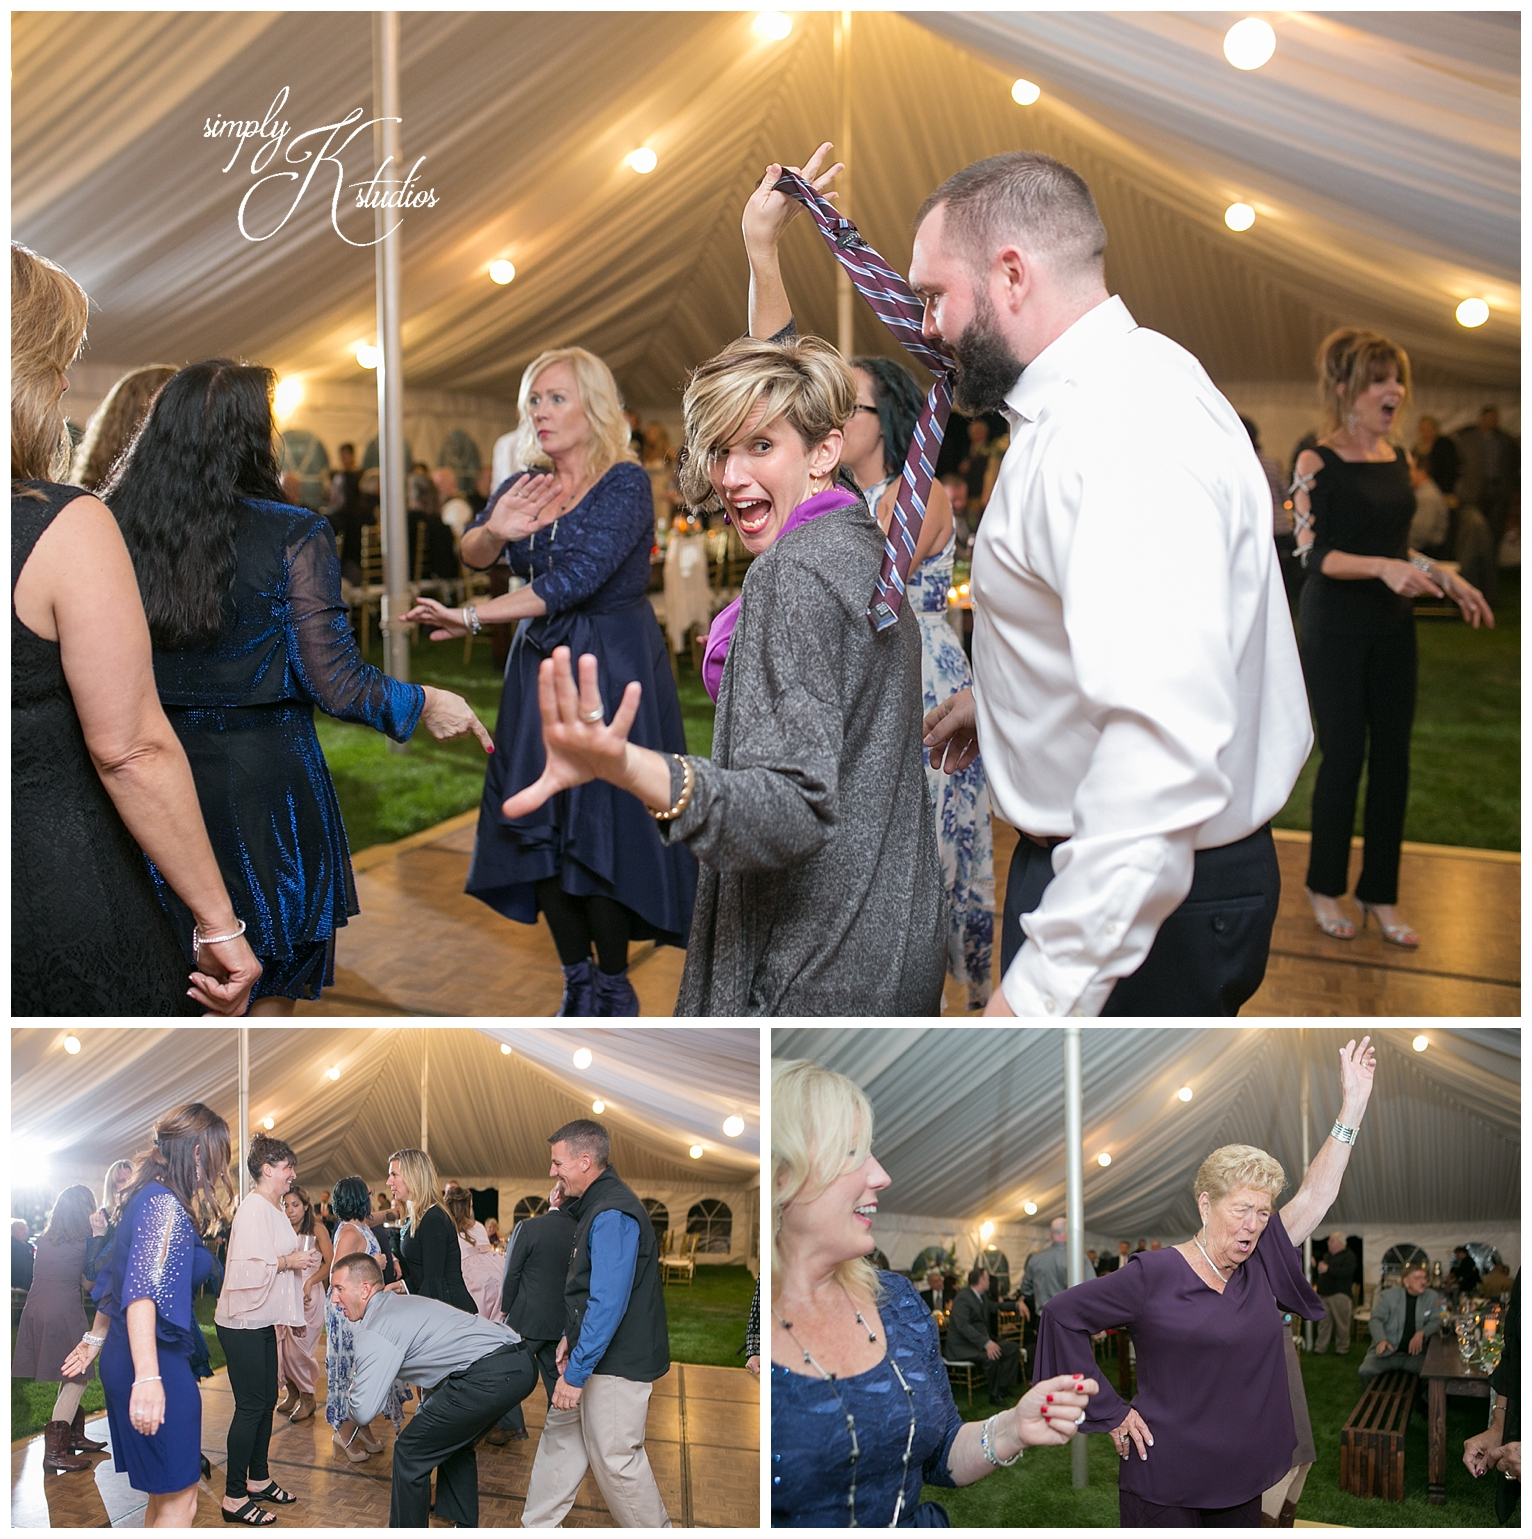 Candid Dance Reception Photos.jpg